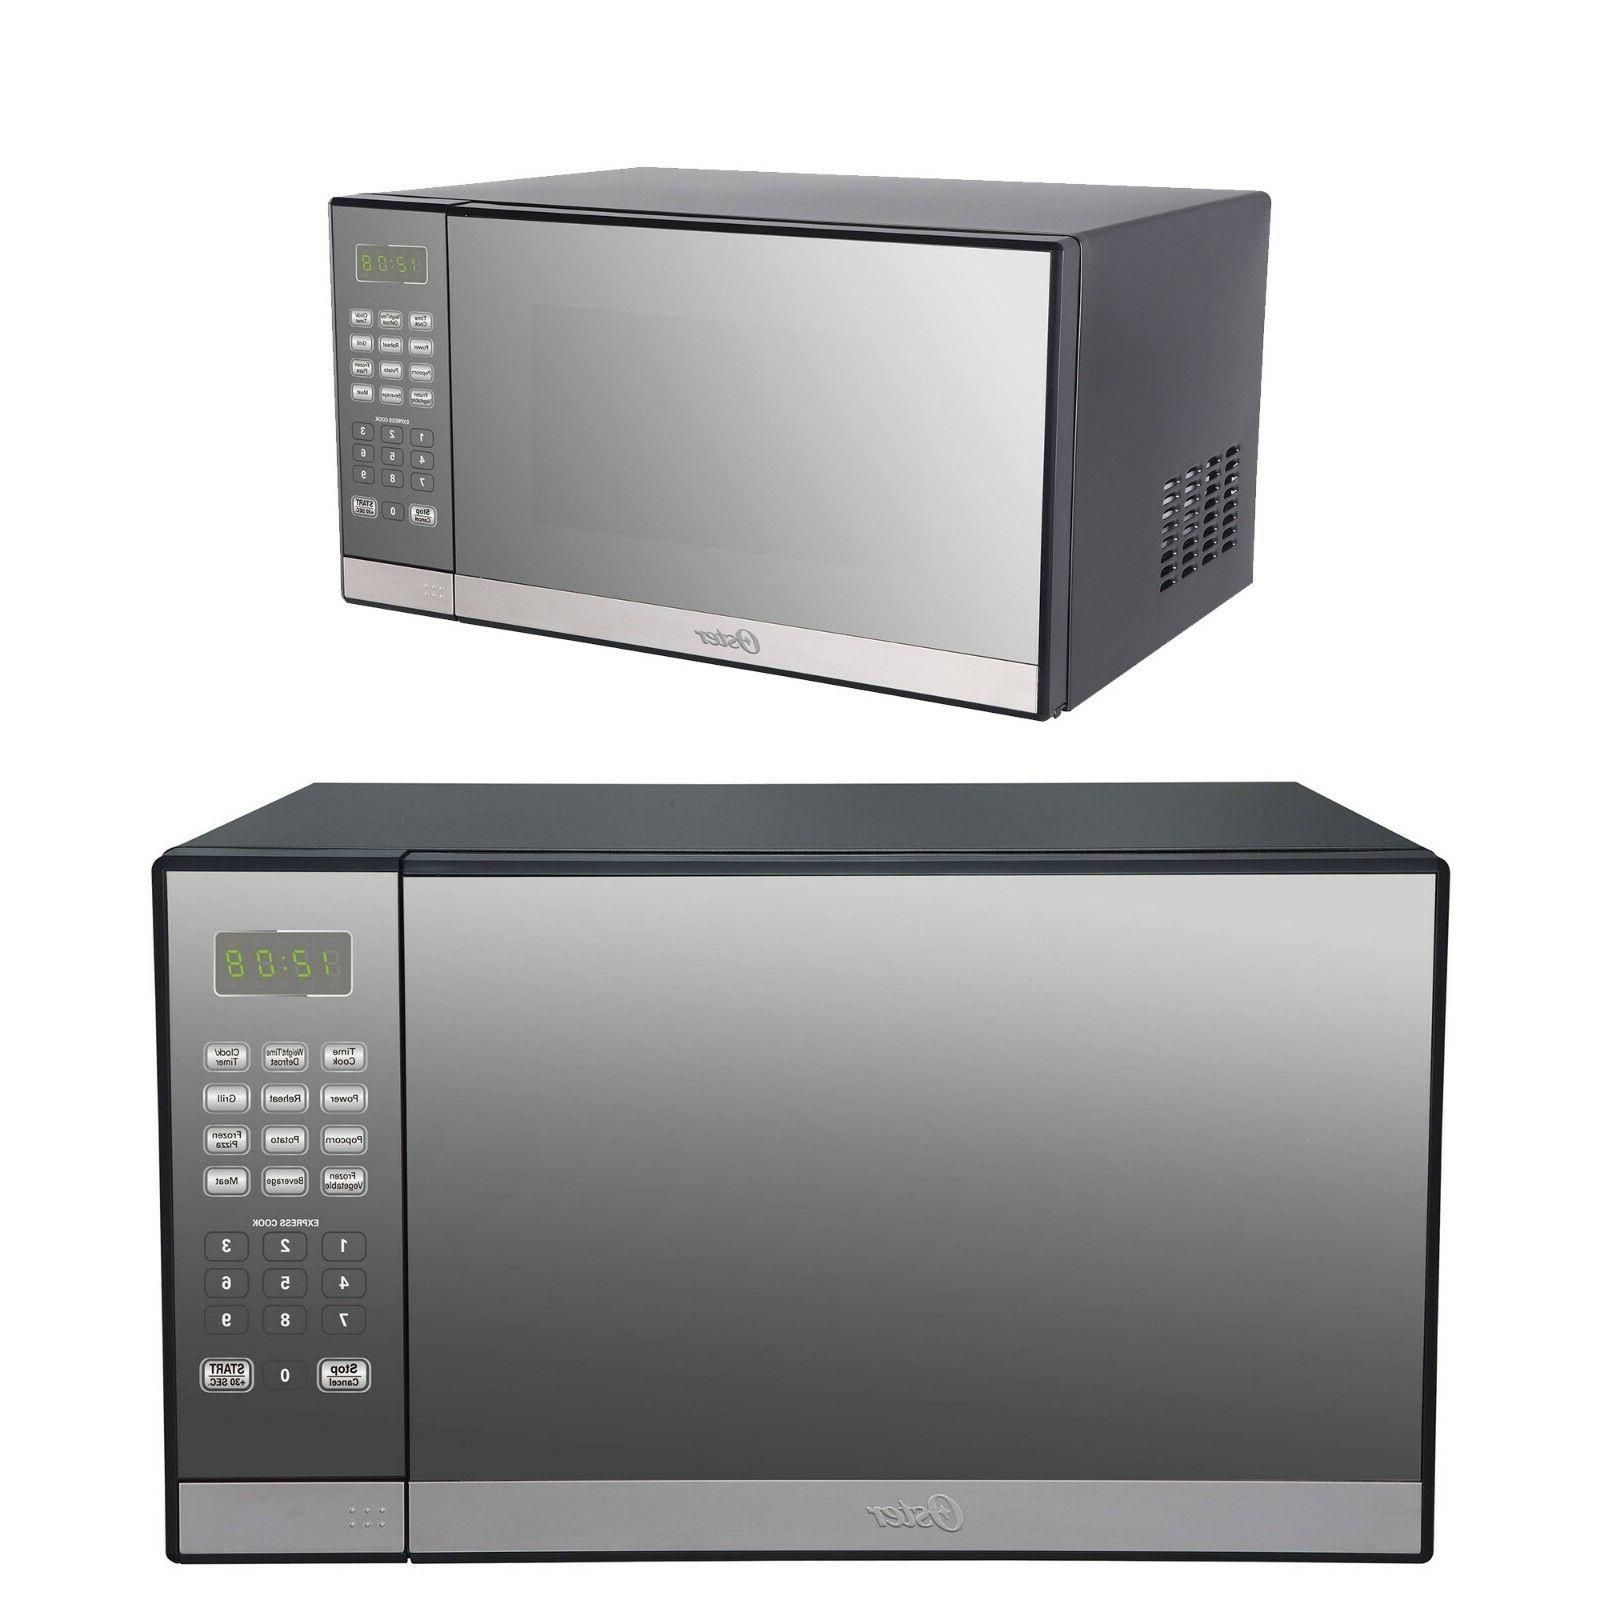 1000w microwave oven w grill countertop kitchen